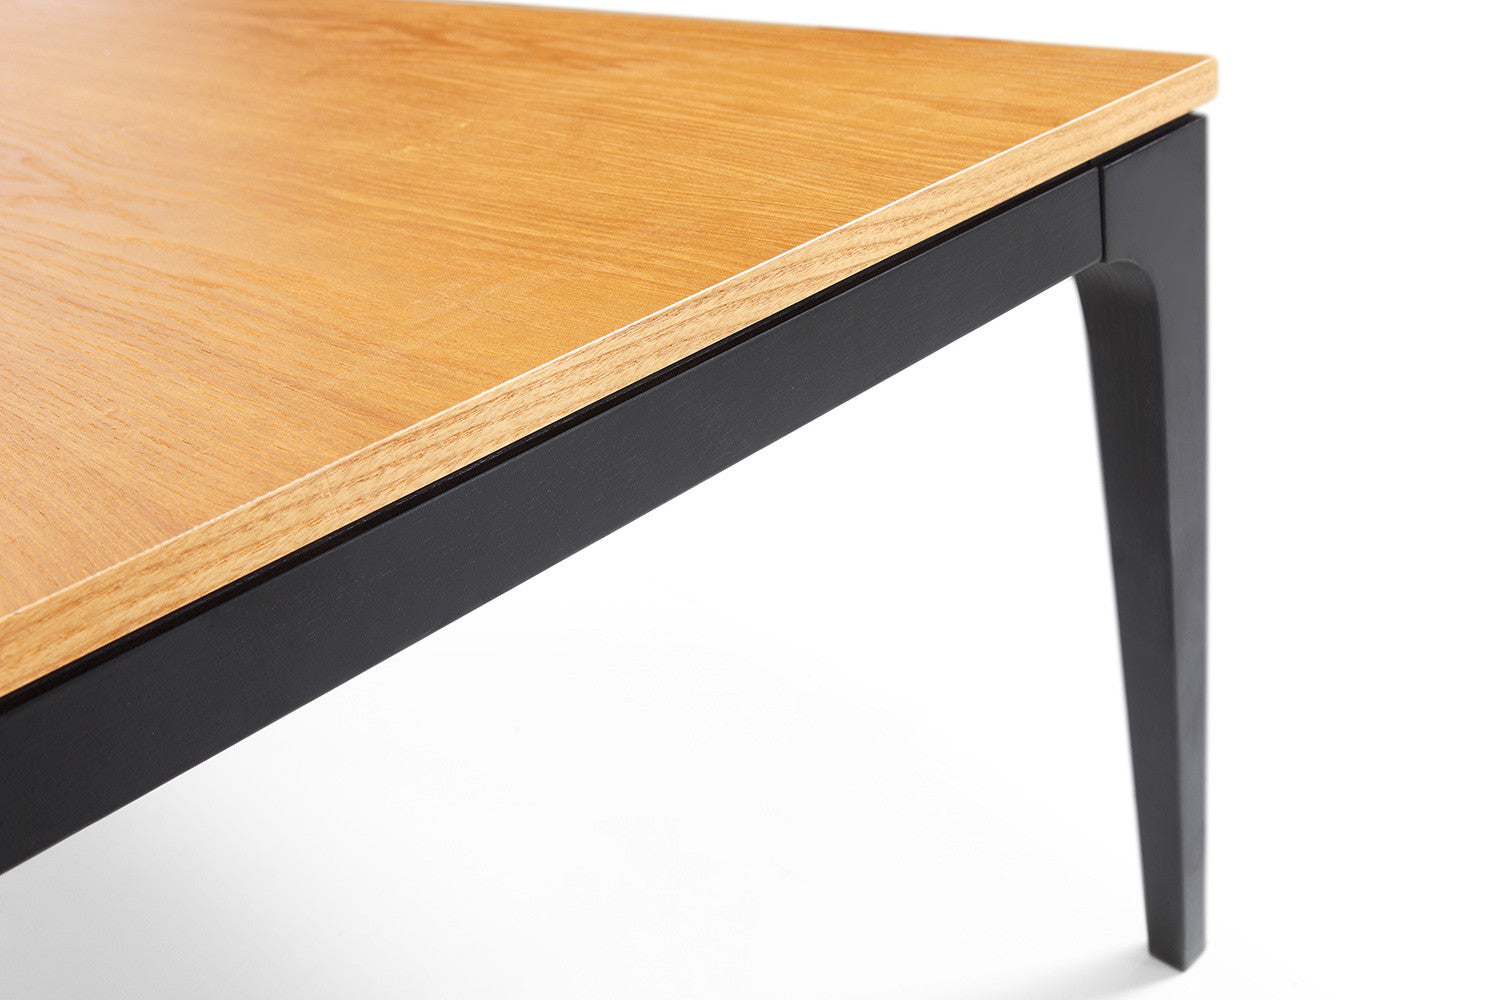 Table basse design en bois noire davos dewarens for Table basse noire design